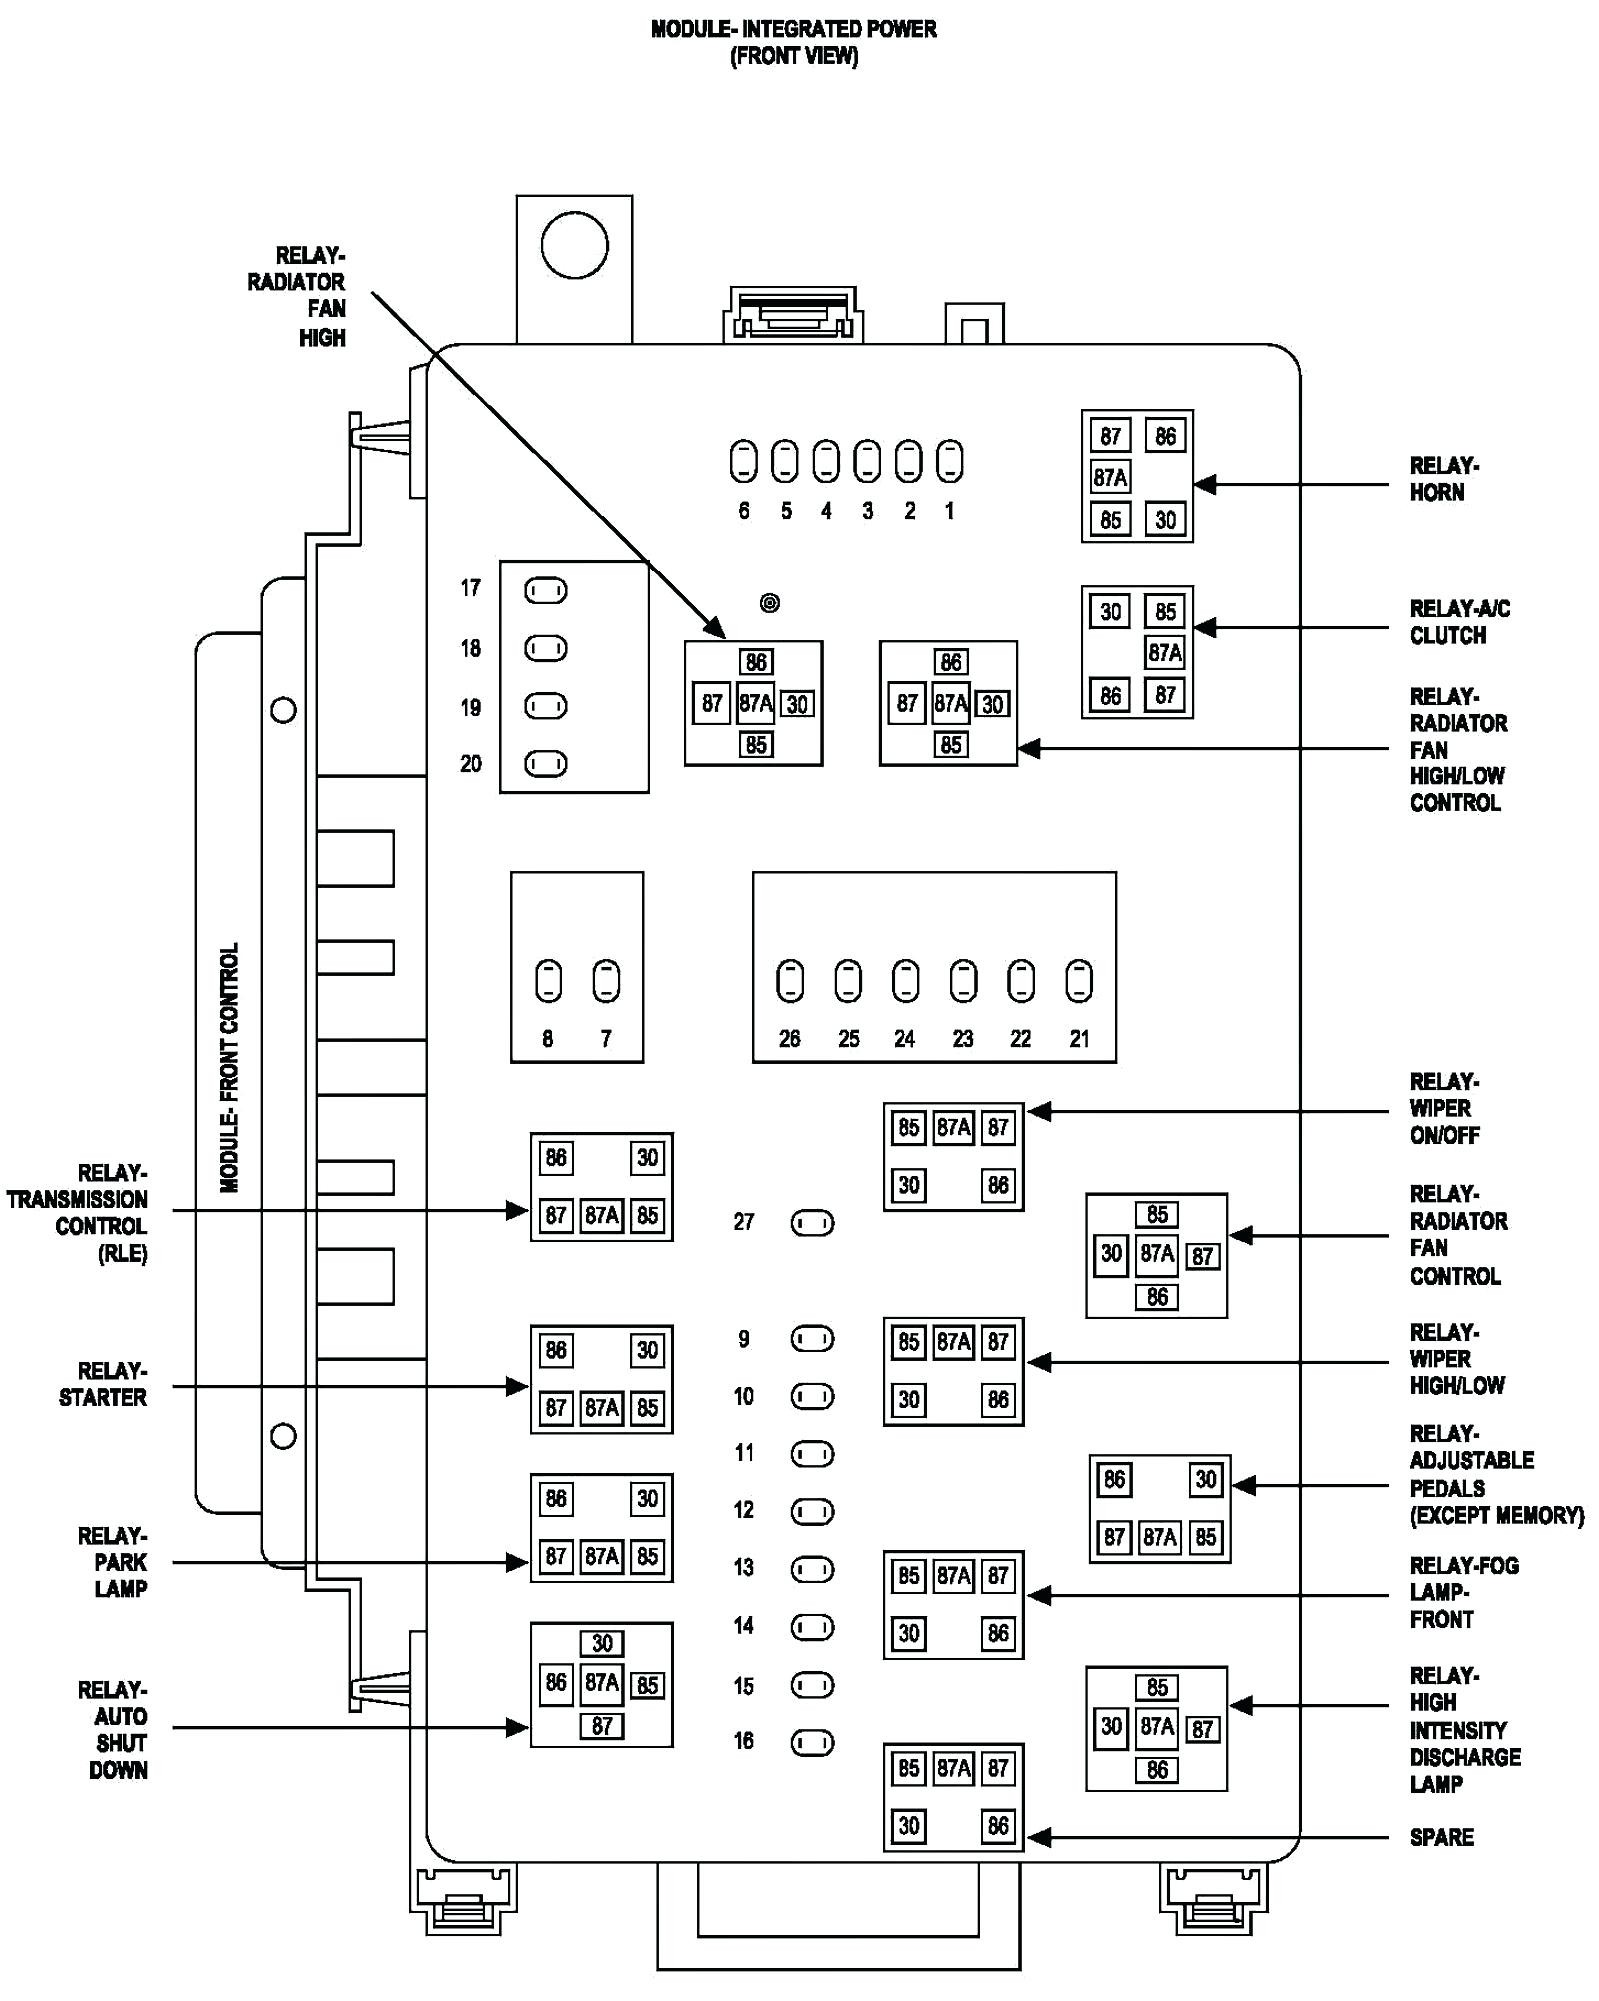 2005 Chrysler 300 Rear Fuse Box Diagram Diagram Base